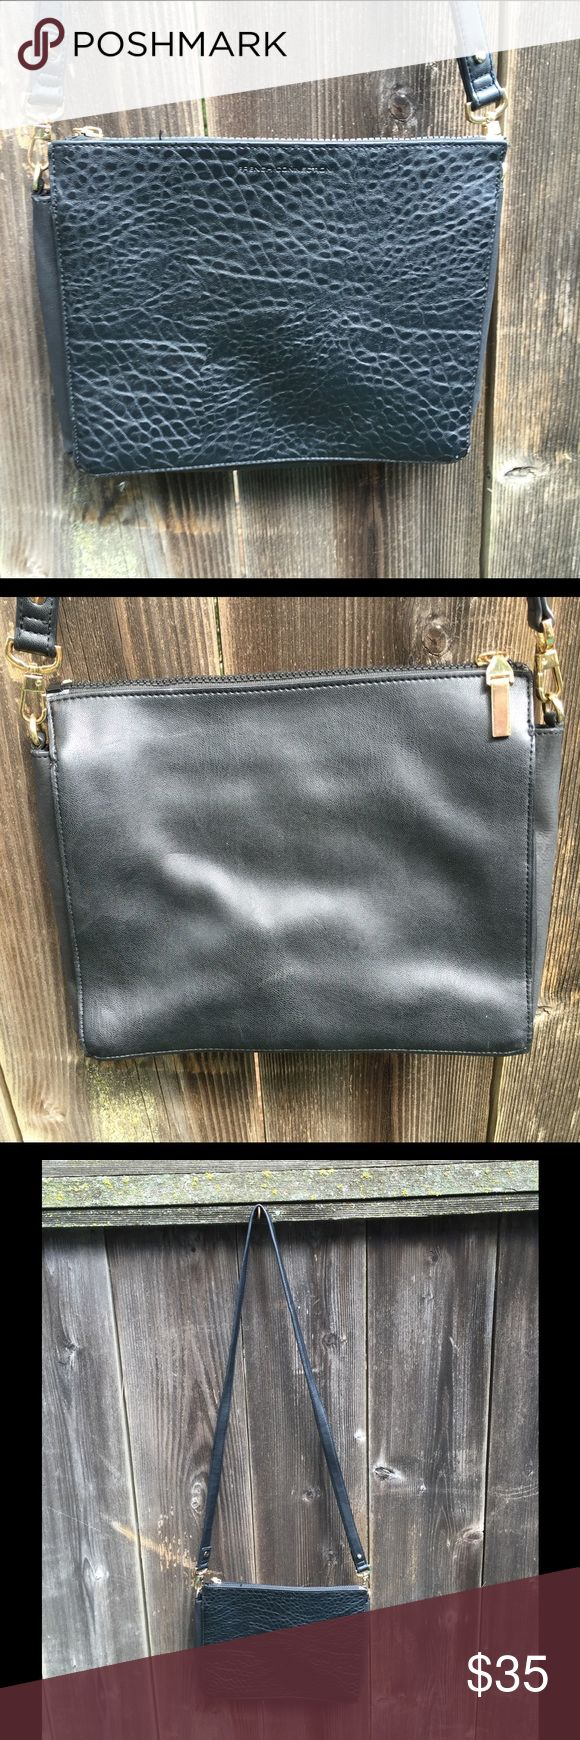 Black French Connection purse Black French Connection purse- can be worn over the shoulder or cross body. One side is a flat, smooth leather the other is a cool texture. Like new condition! French Connection Bags Crossbody Bags